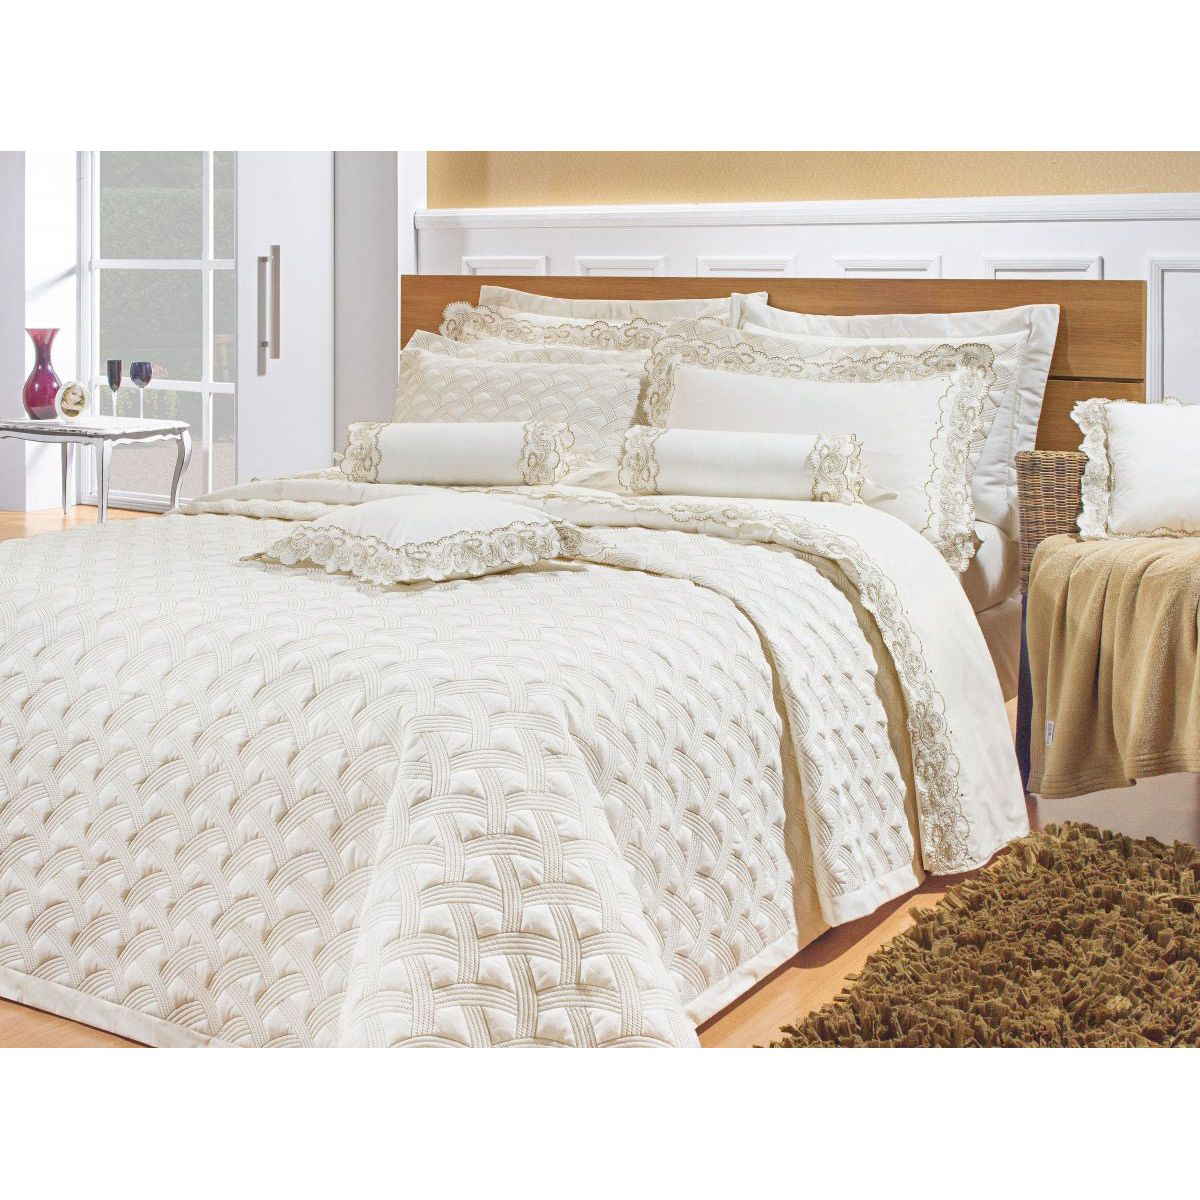 Colcha cobre leito cama queen percal 200 fios com 3 for Tipos de camas queen